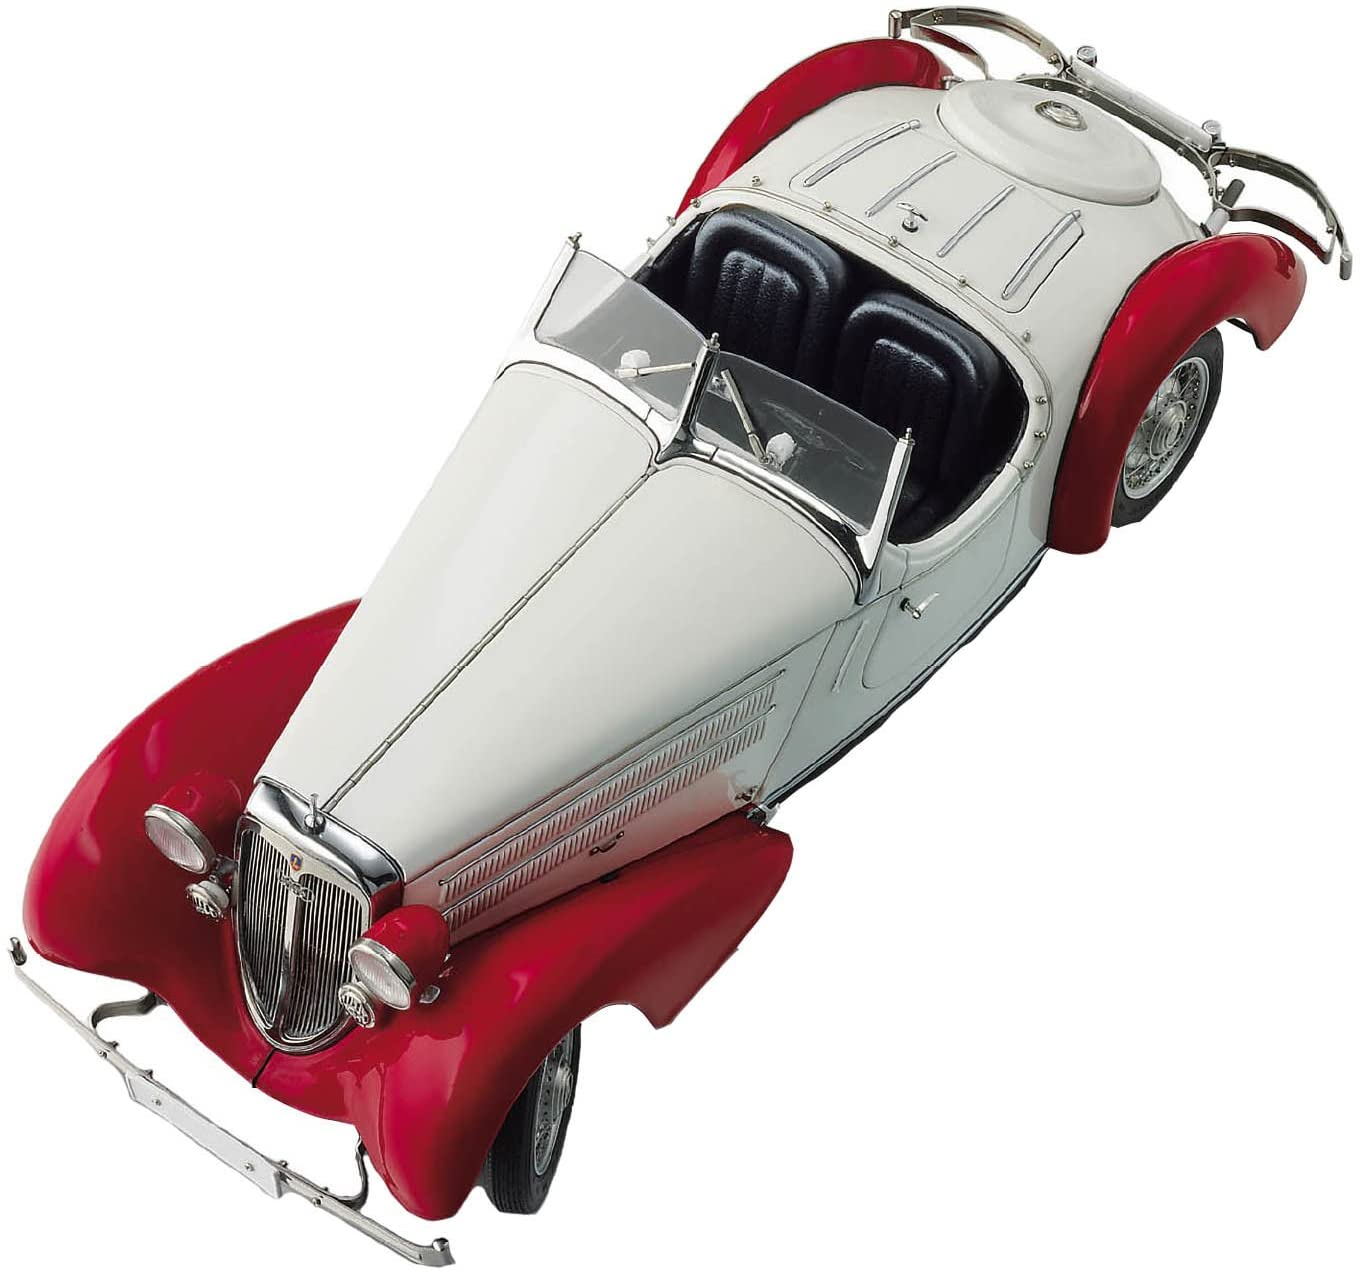 CMC-Classic Model Cars Audi 225 Front Roadster, Red/White Limited Edition 1:18 Scale Detailed Assembled Collectible Historic Antique Vehicle Replica